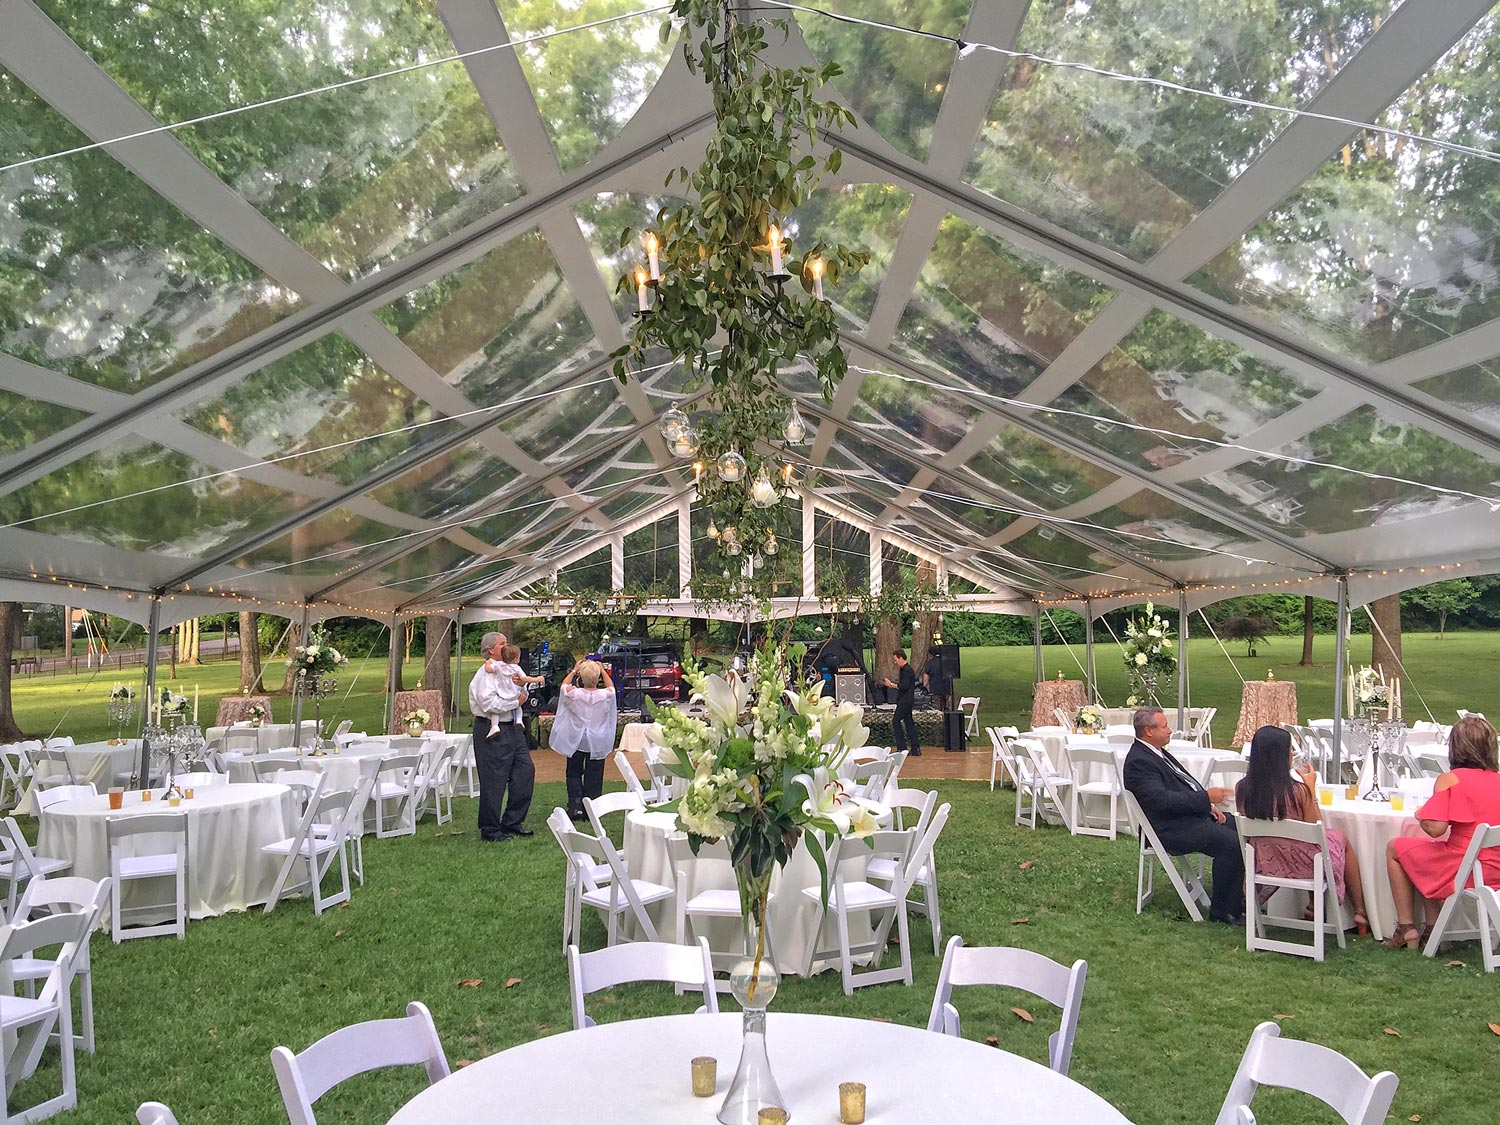 Wedding Tent Rentals with Regel and Company